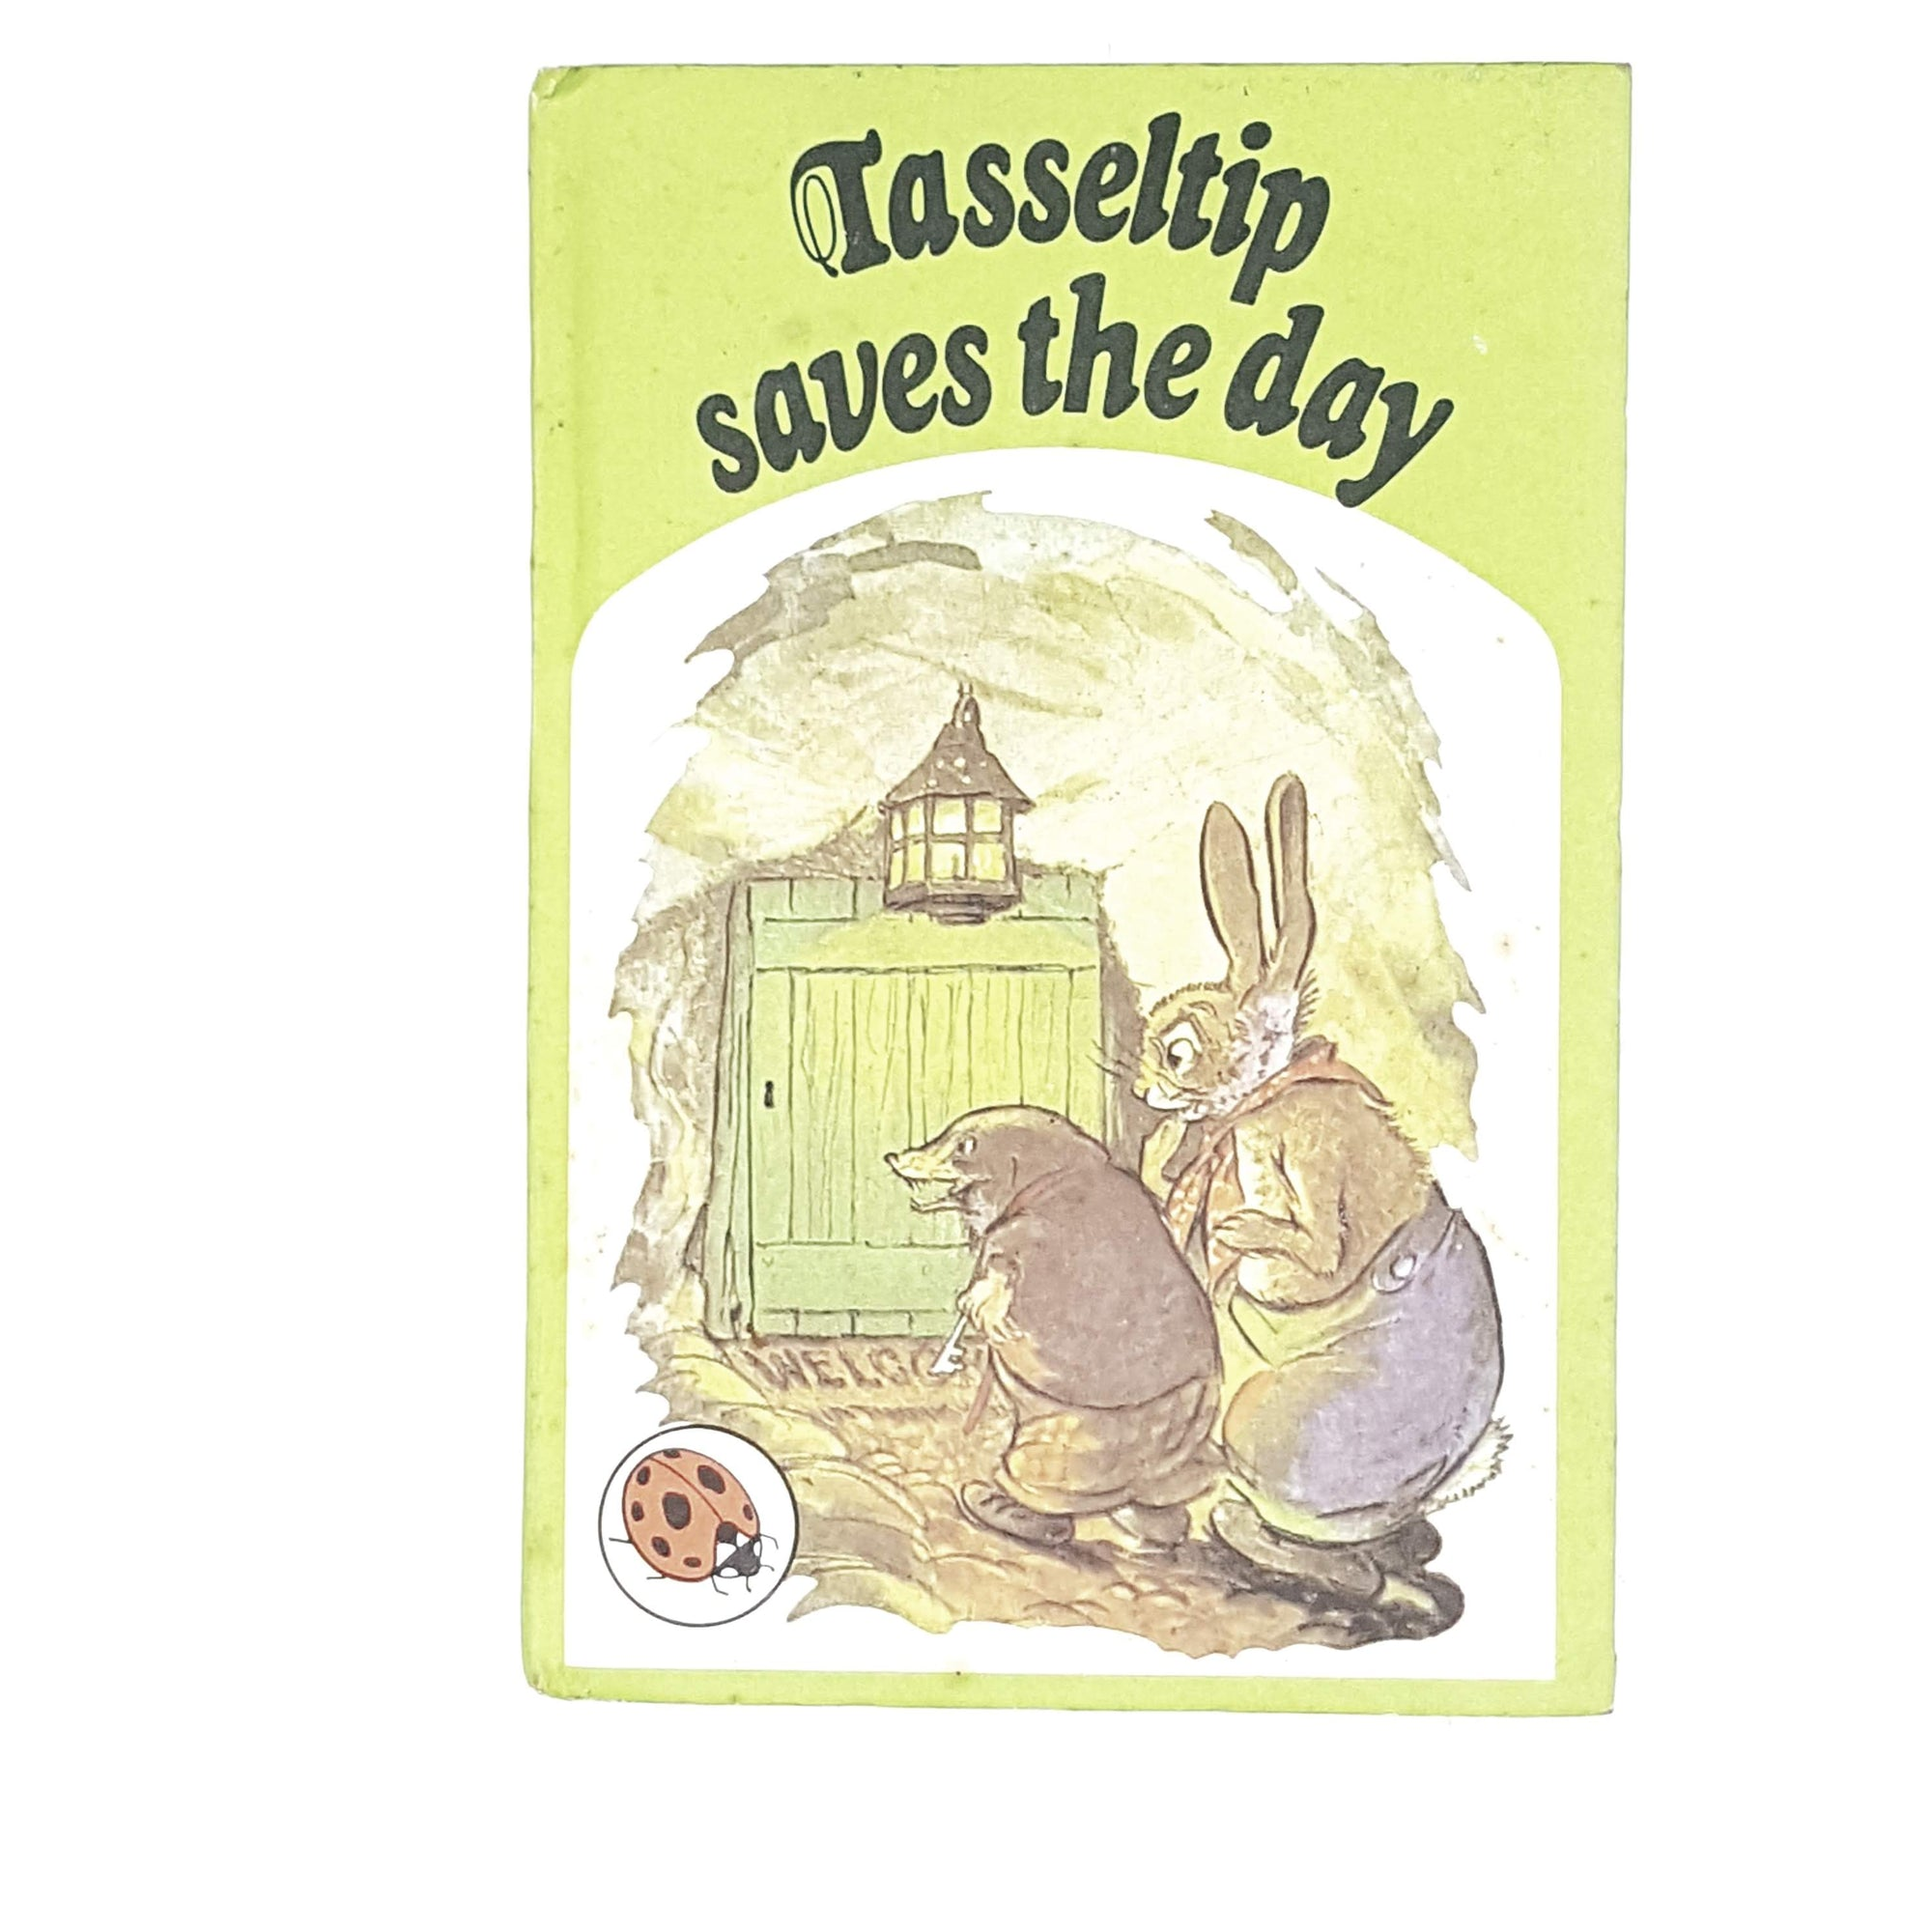 Vintage Ladybird: Tasseltip Saves The Day 1975